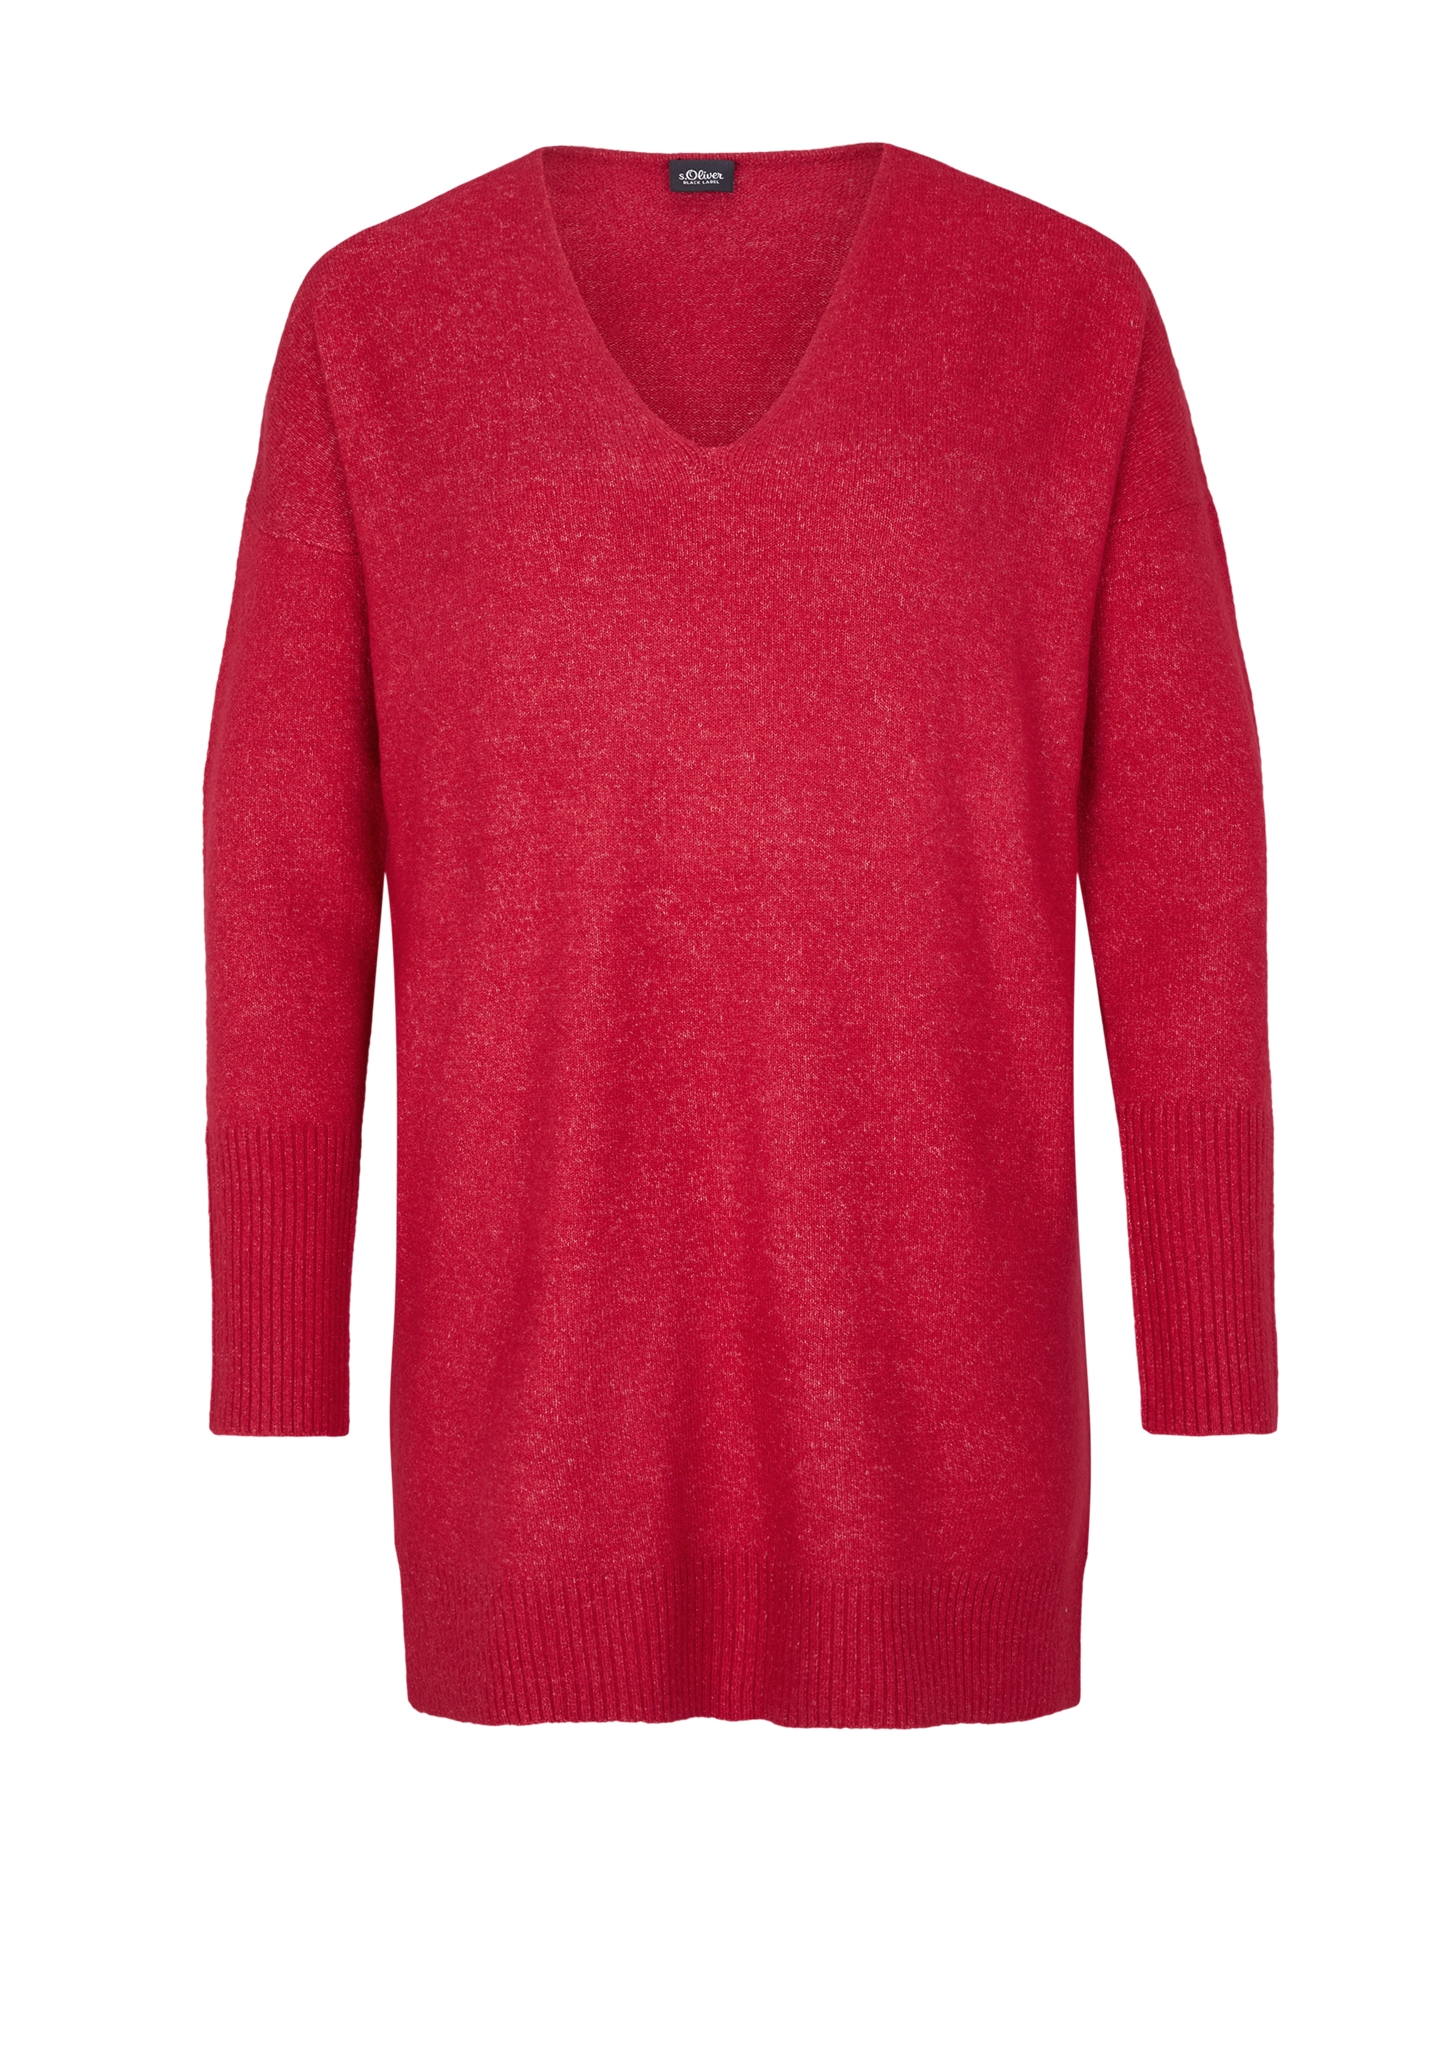 Long-Pullover   Bekleidung > Pullover > Longpullover   Rot   52% polyamid -  40% polyacryl -  5% wolle -  3% elasthan   s.Oliver BLACK LABEL